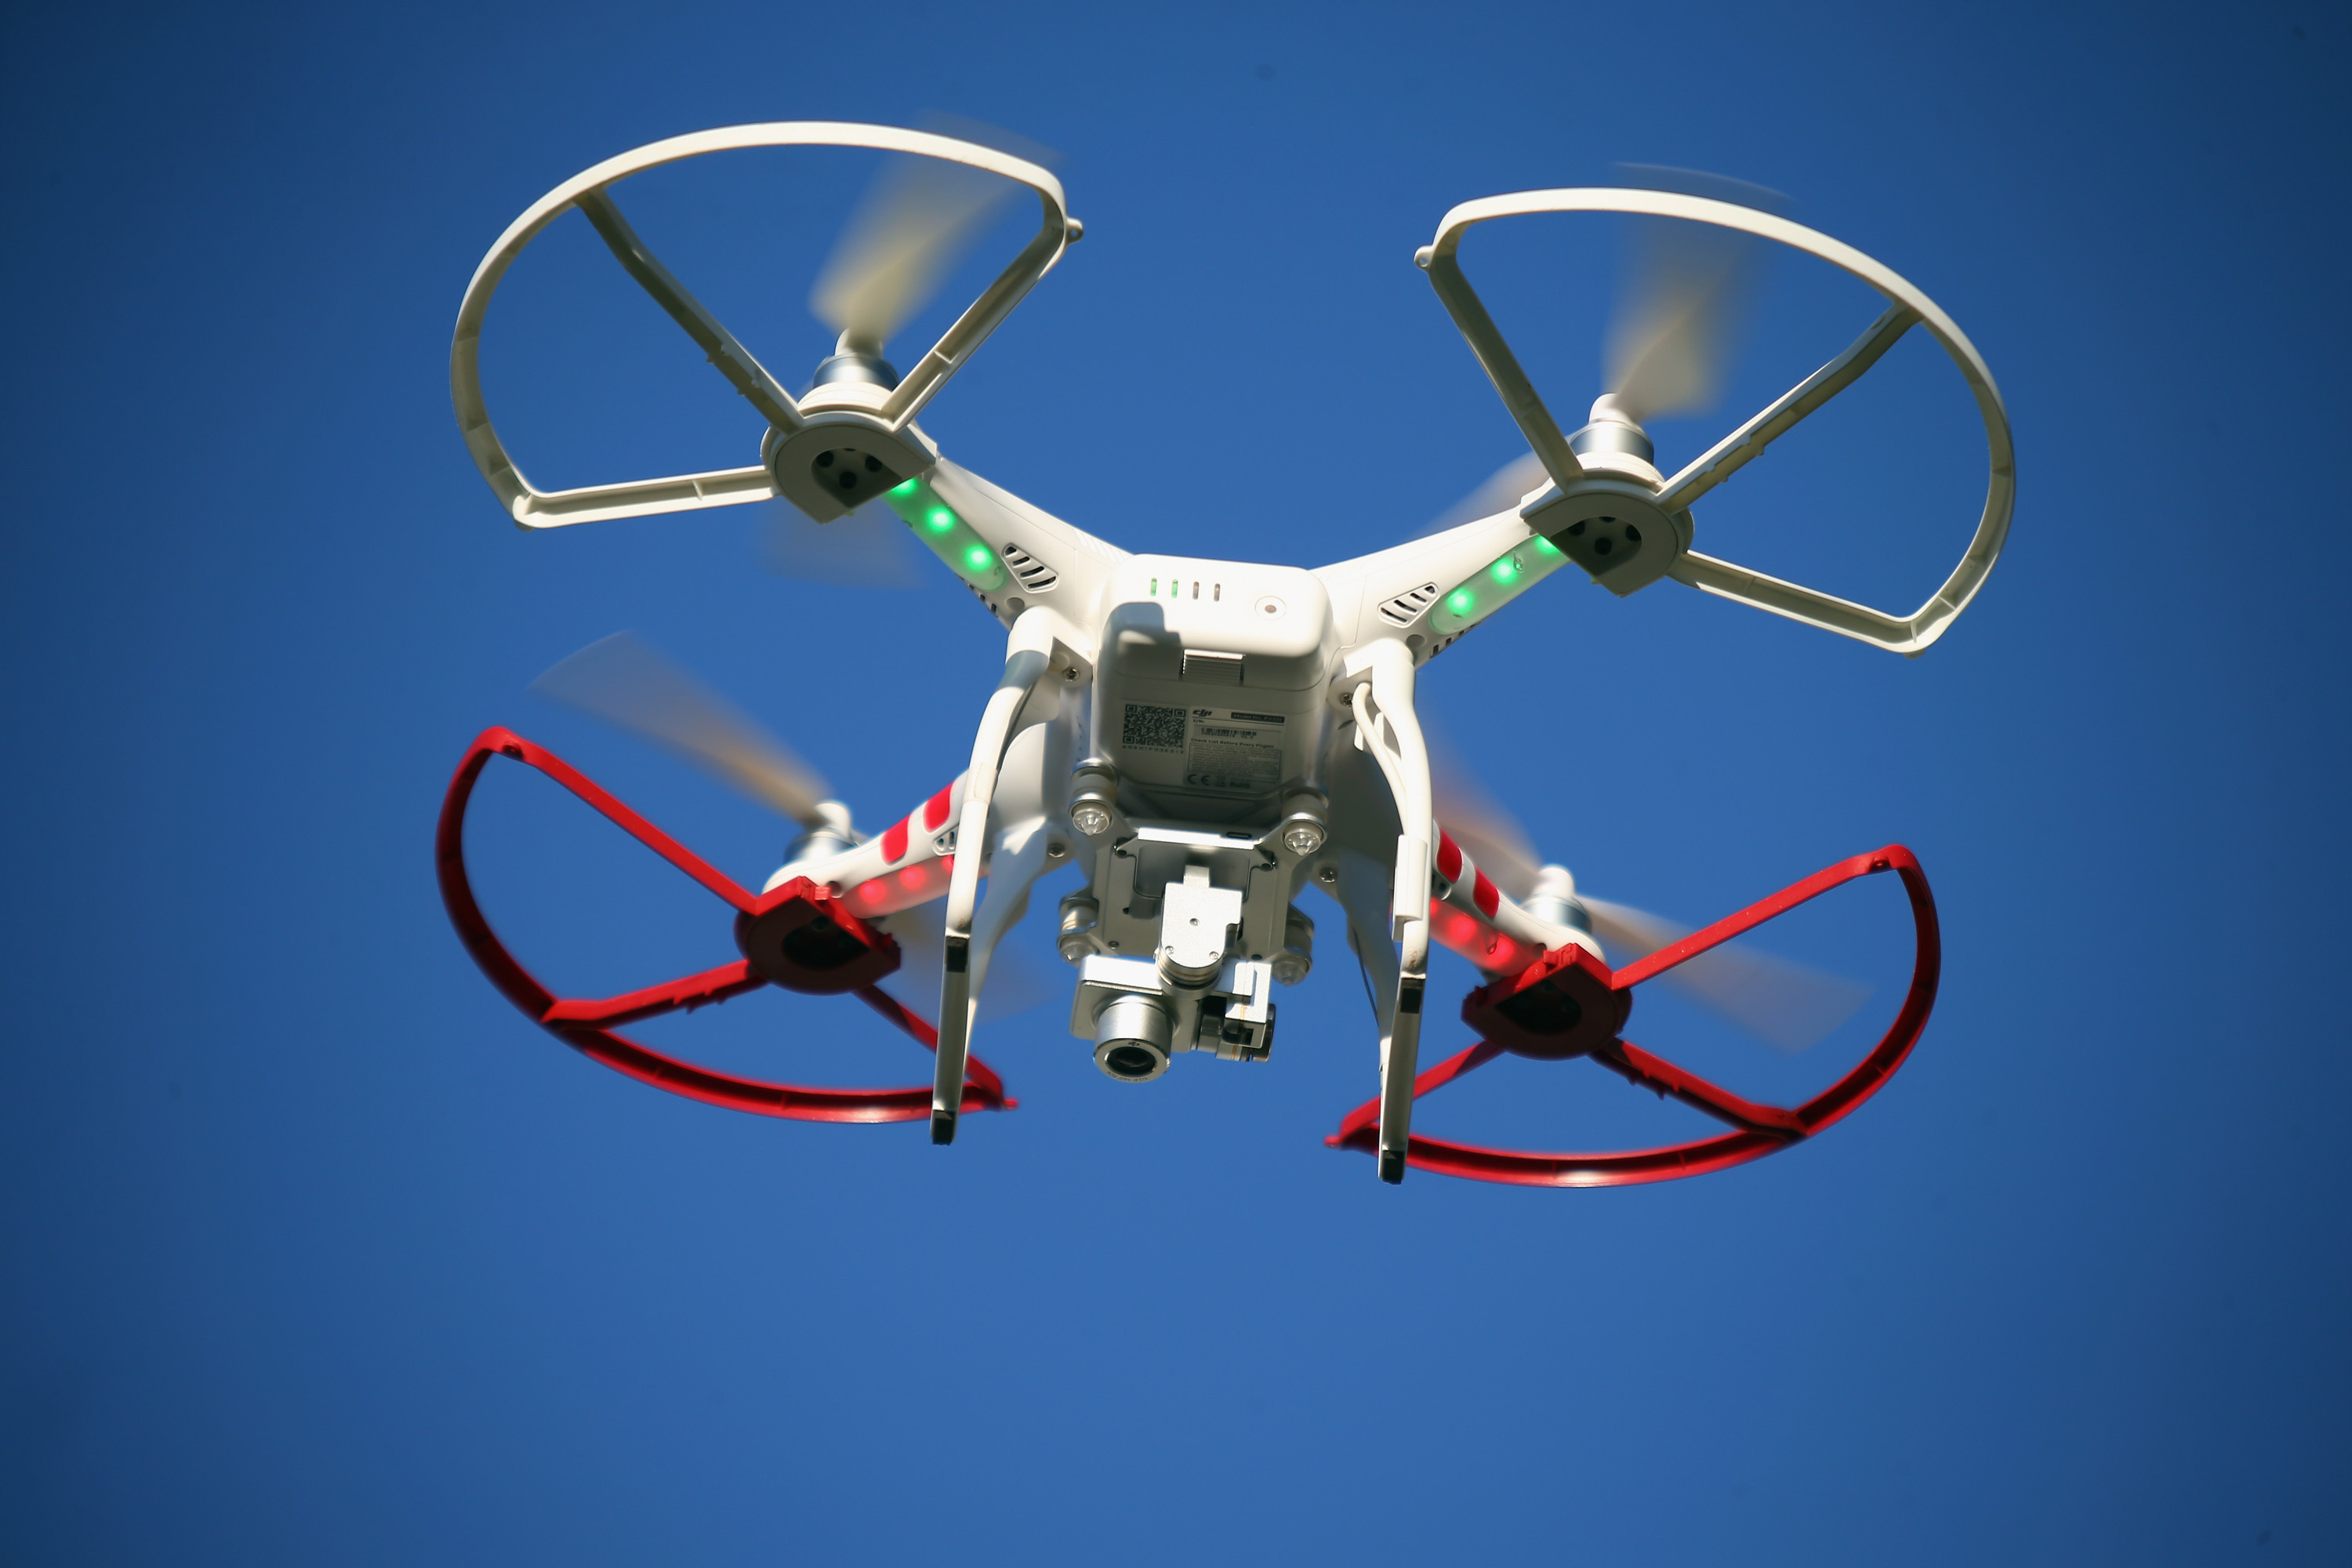 A drone is flown for recreational purposes in the sky above Old Bethpage, New York on Sept. 5, 2015.